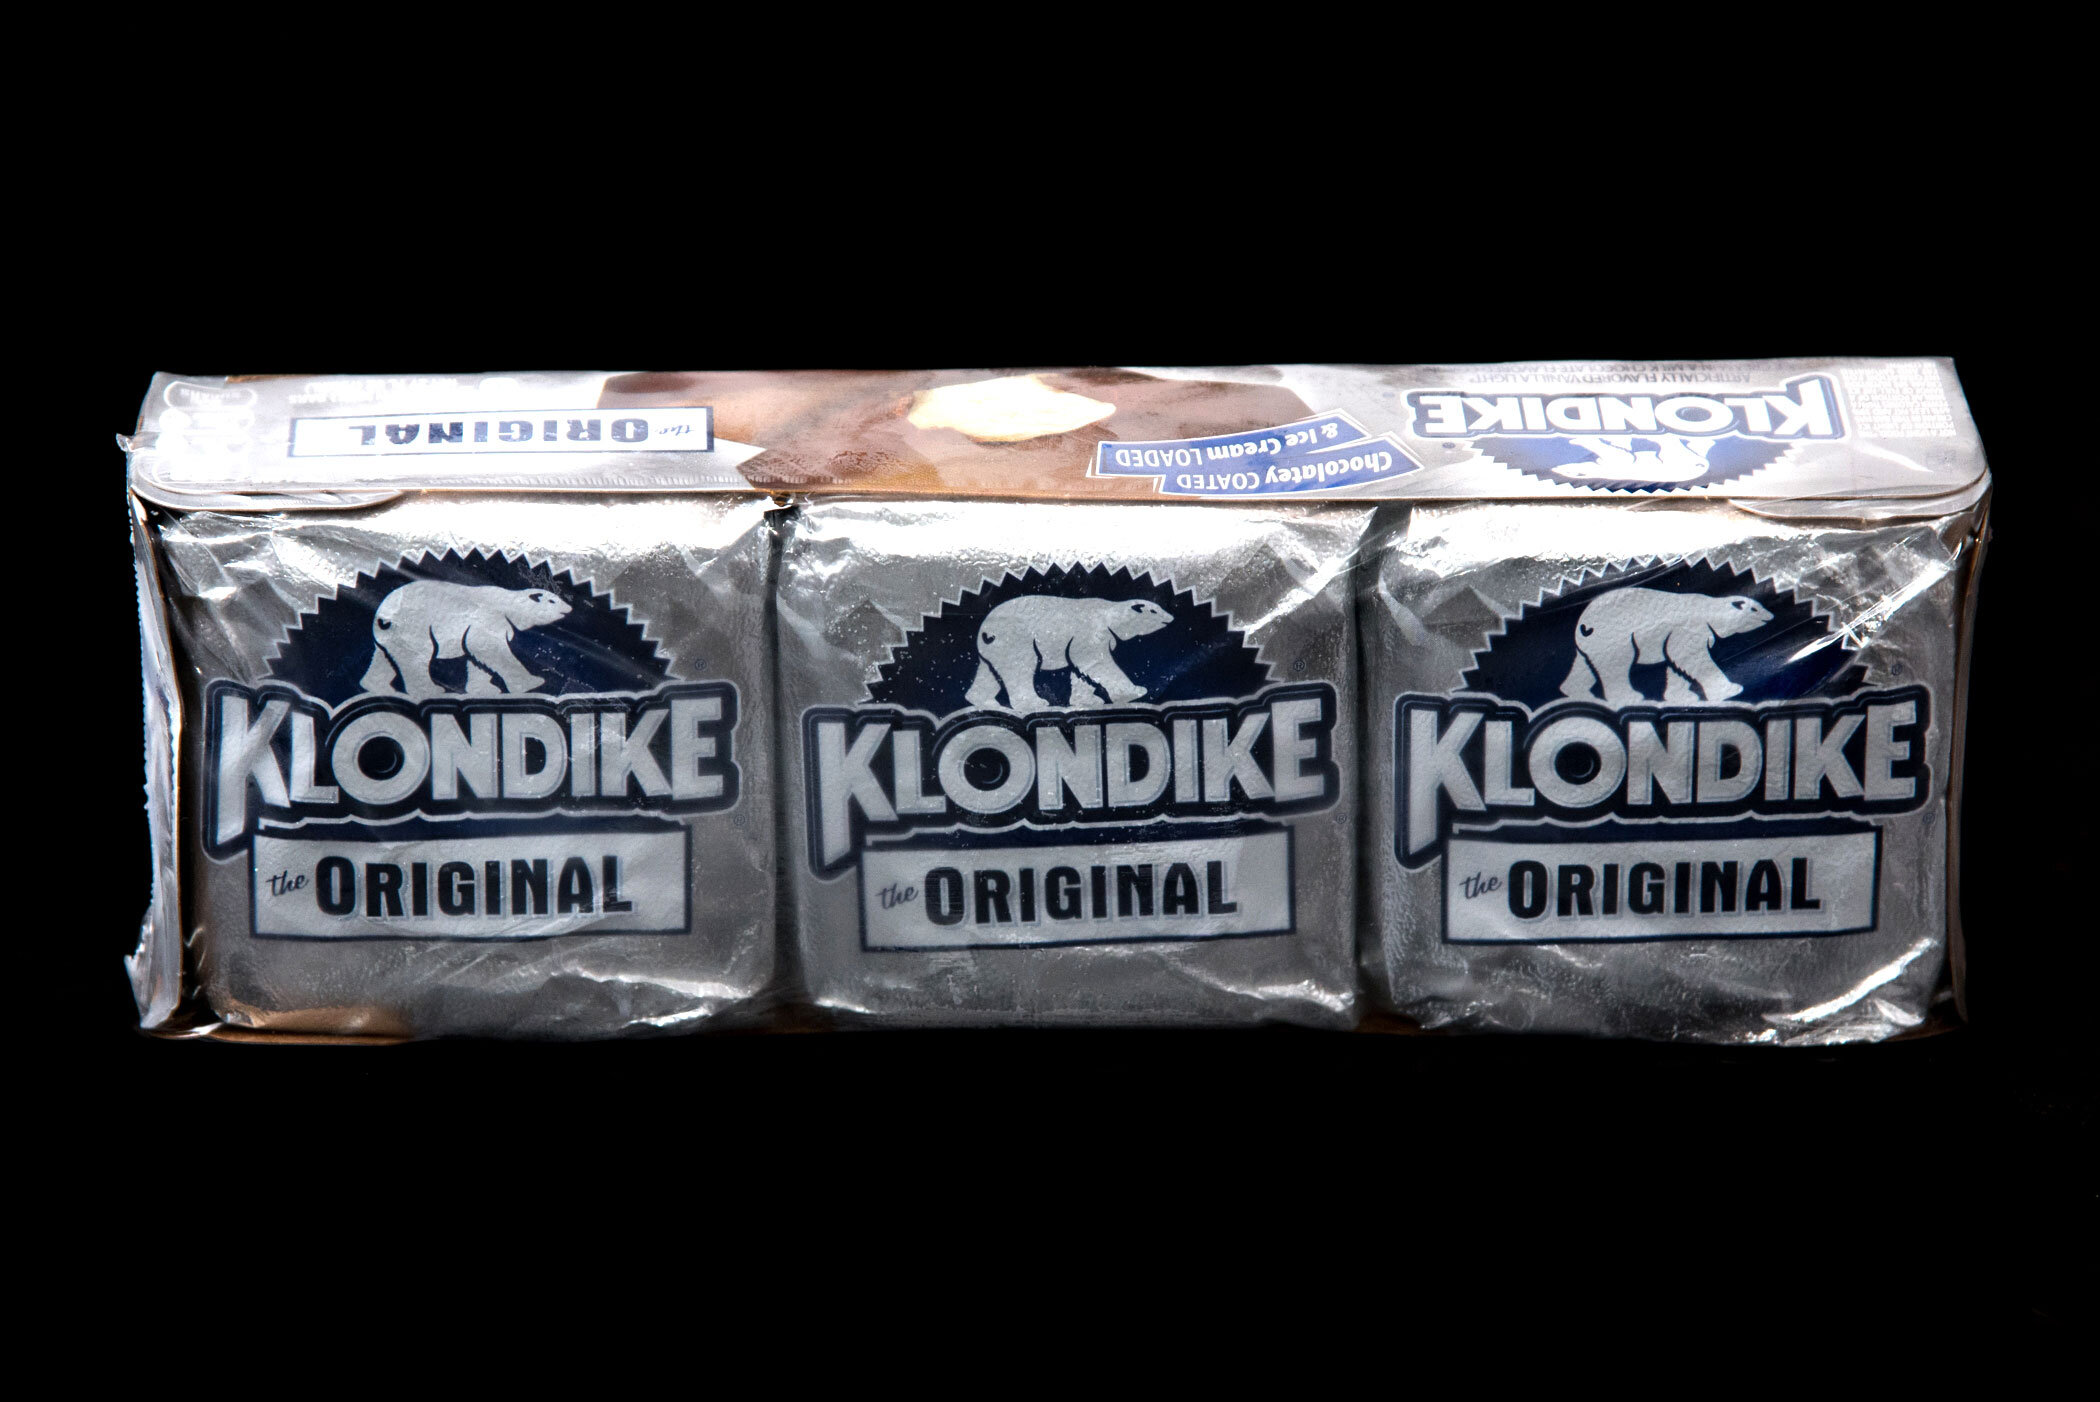 """""""So we gon' do everything that Kan' like, Heard they'd do anything for a Klondike, Well, I'd do anything for a blonde dyke"""" - Kanye West, """"Stronger"""""""